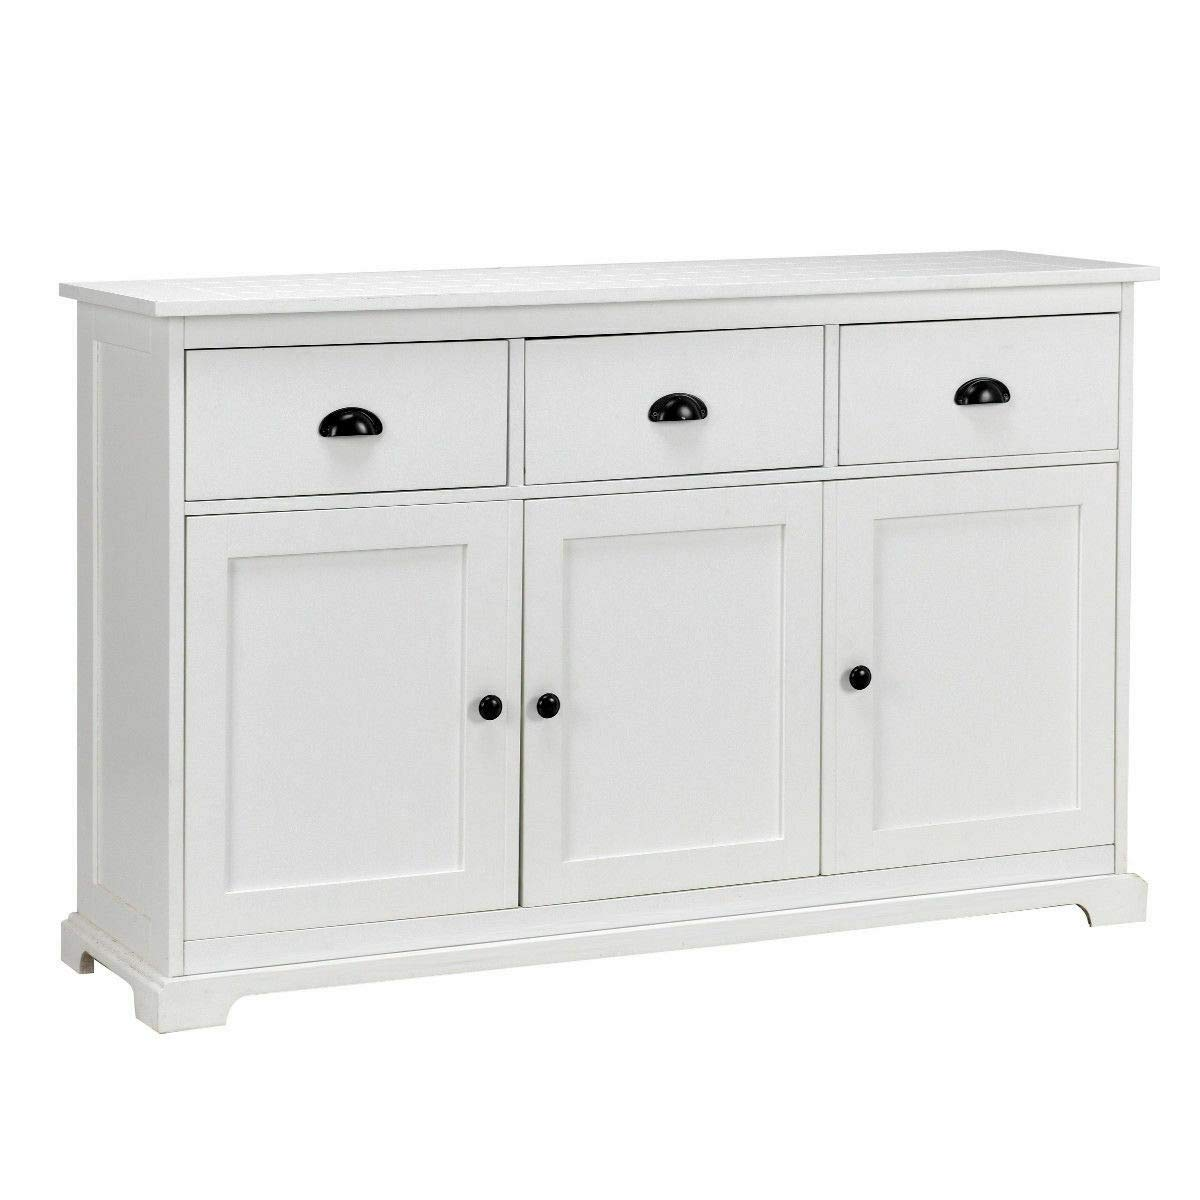 Amazon.com   Entryway Cupboard Sideboard Buffet Table Storage Console  Cabinet W/ 3 Drawers   White With Ebook   Buffets U0026 Sideboards